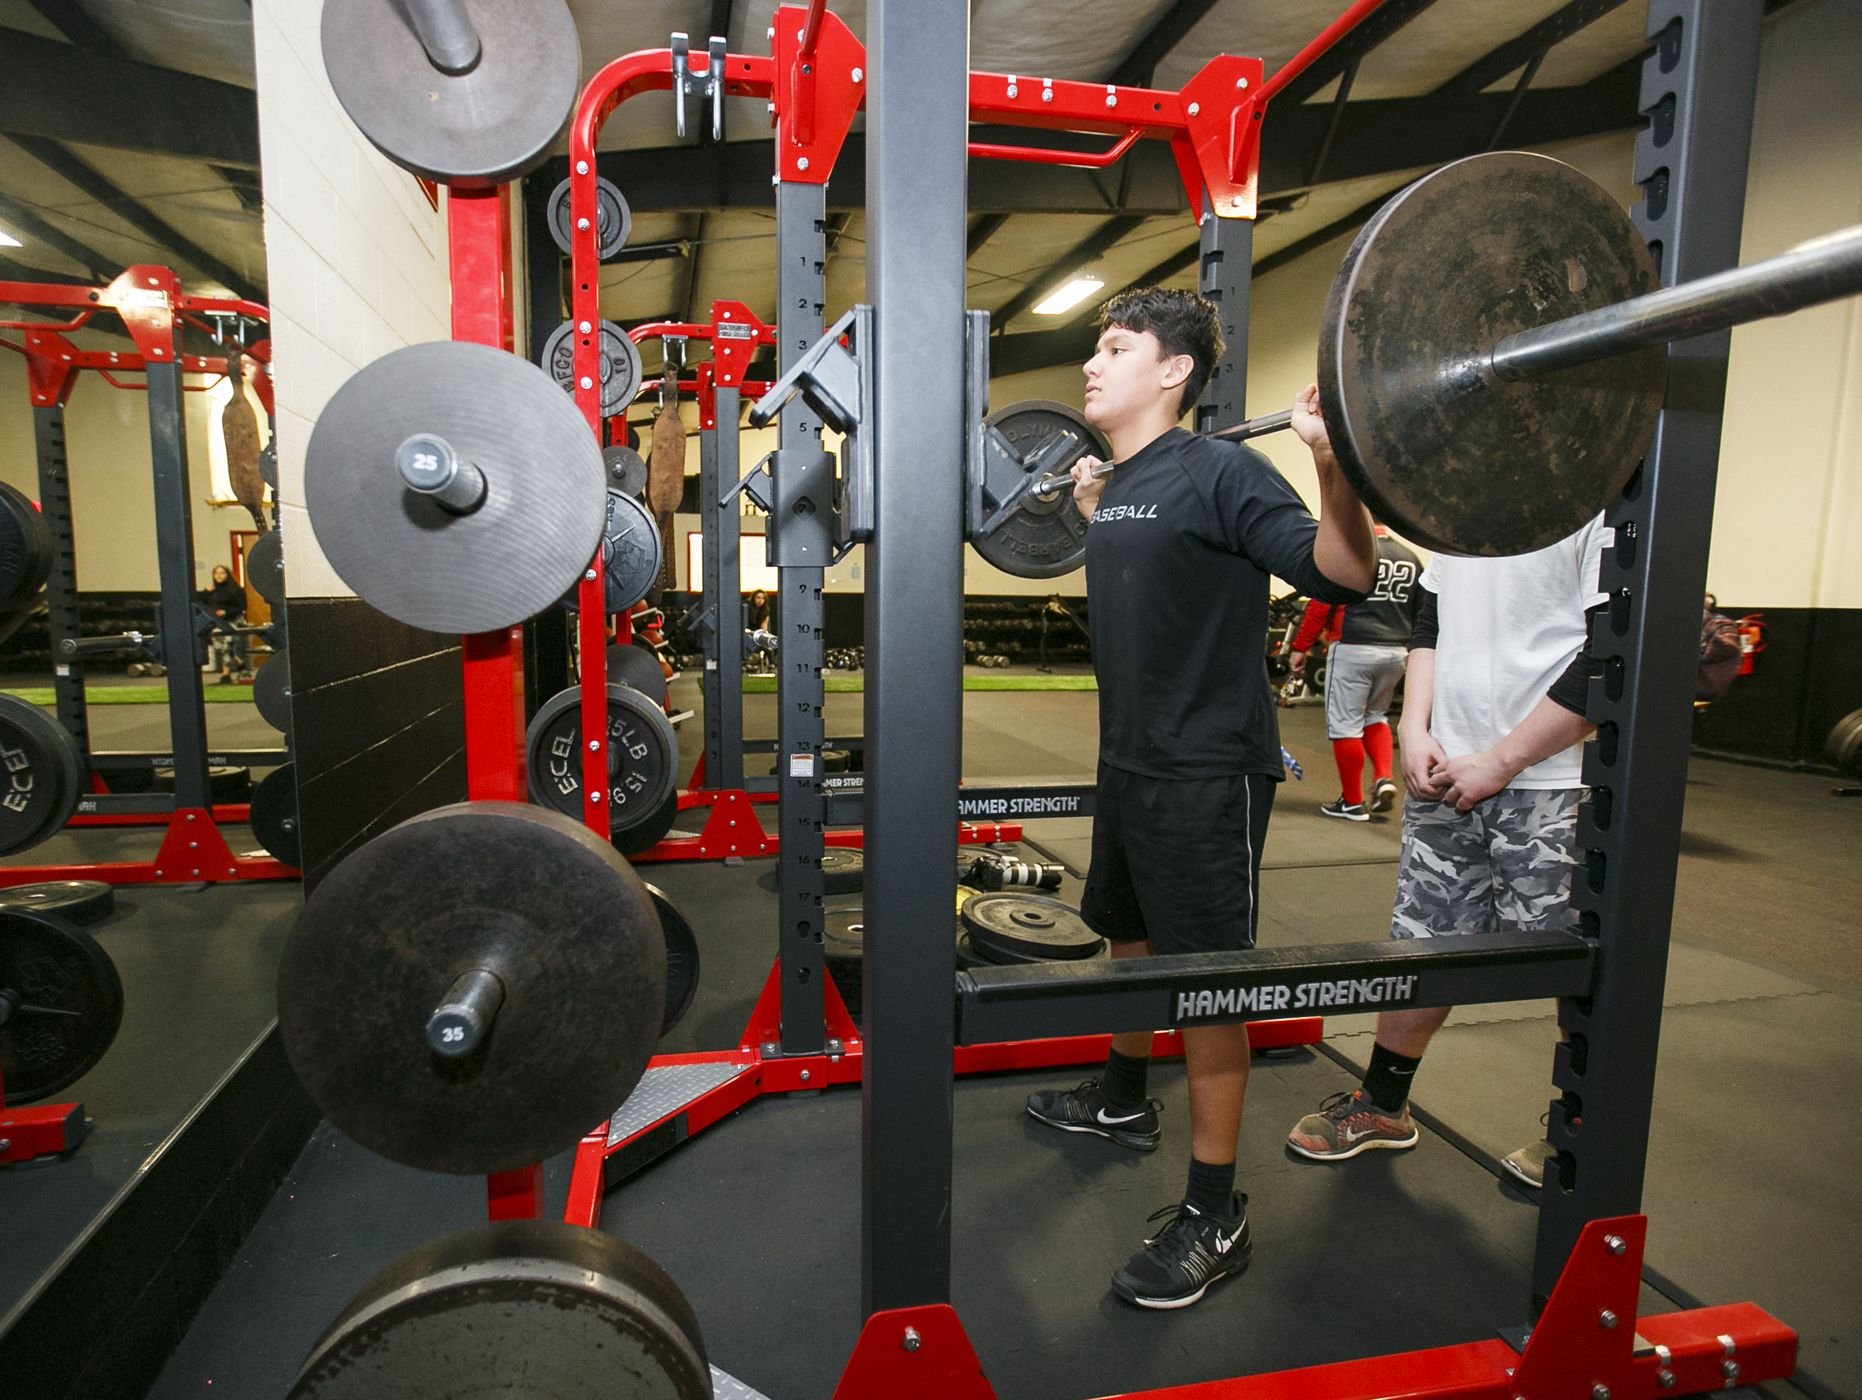 Sophomore Will Tsukamaki does squats in North Salem High School's newly remodeled weight room on Tuesday, Feb. 14, 2017. Tsukamaki and other students helped install the floor during the holiday break in December.